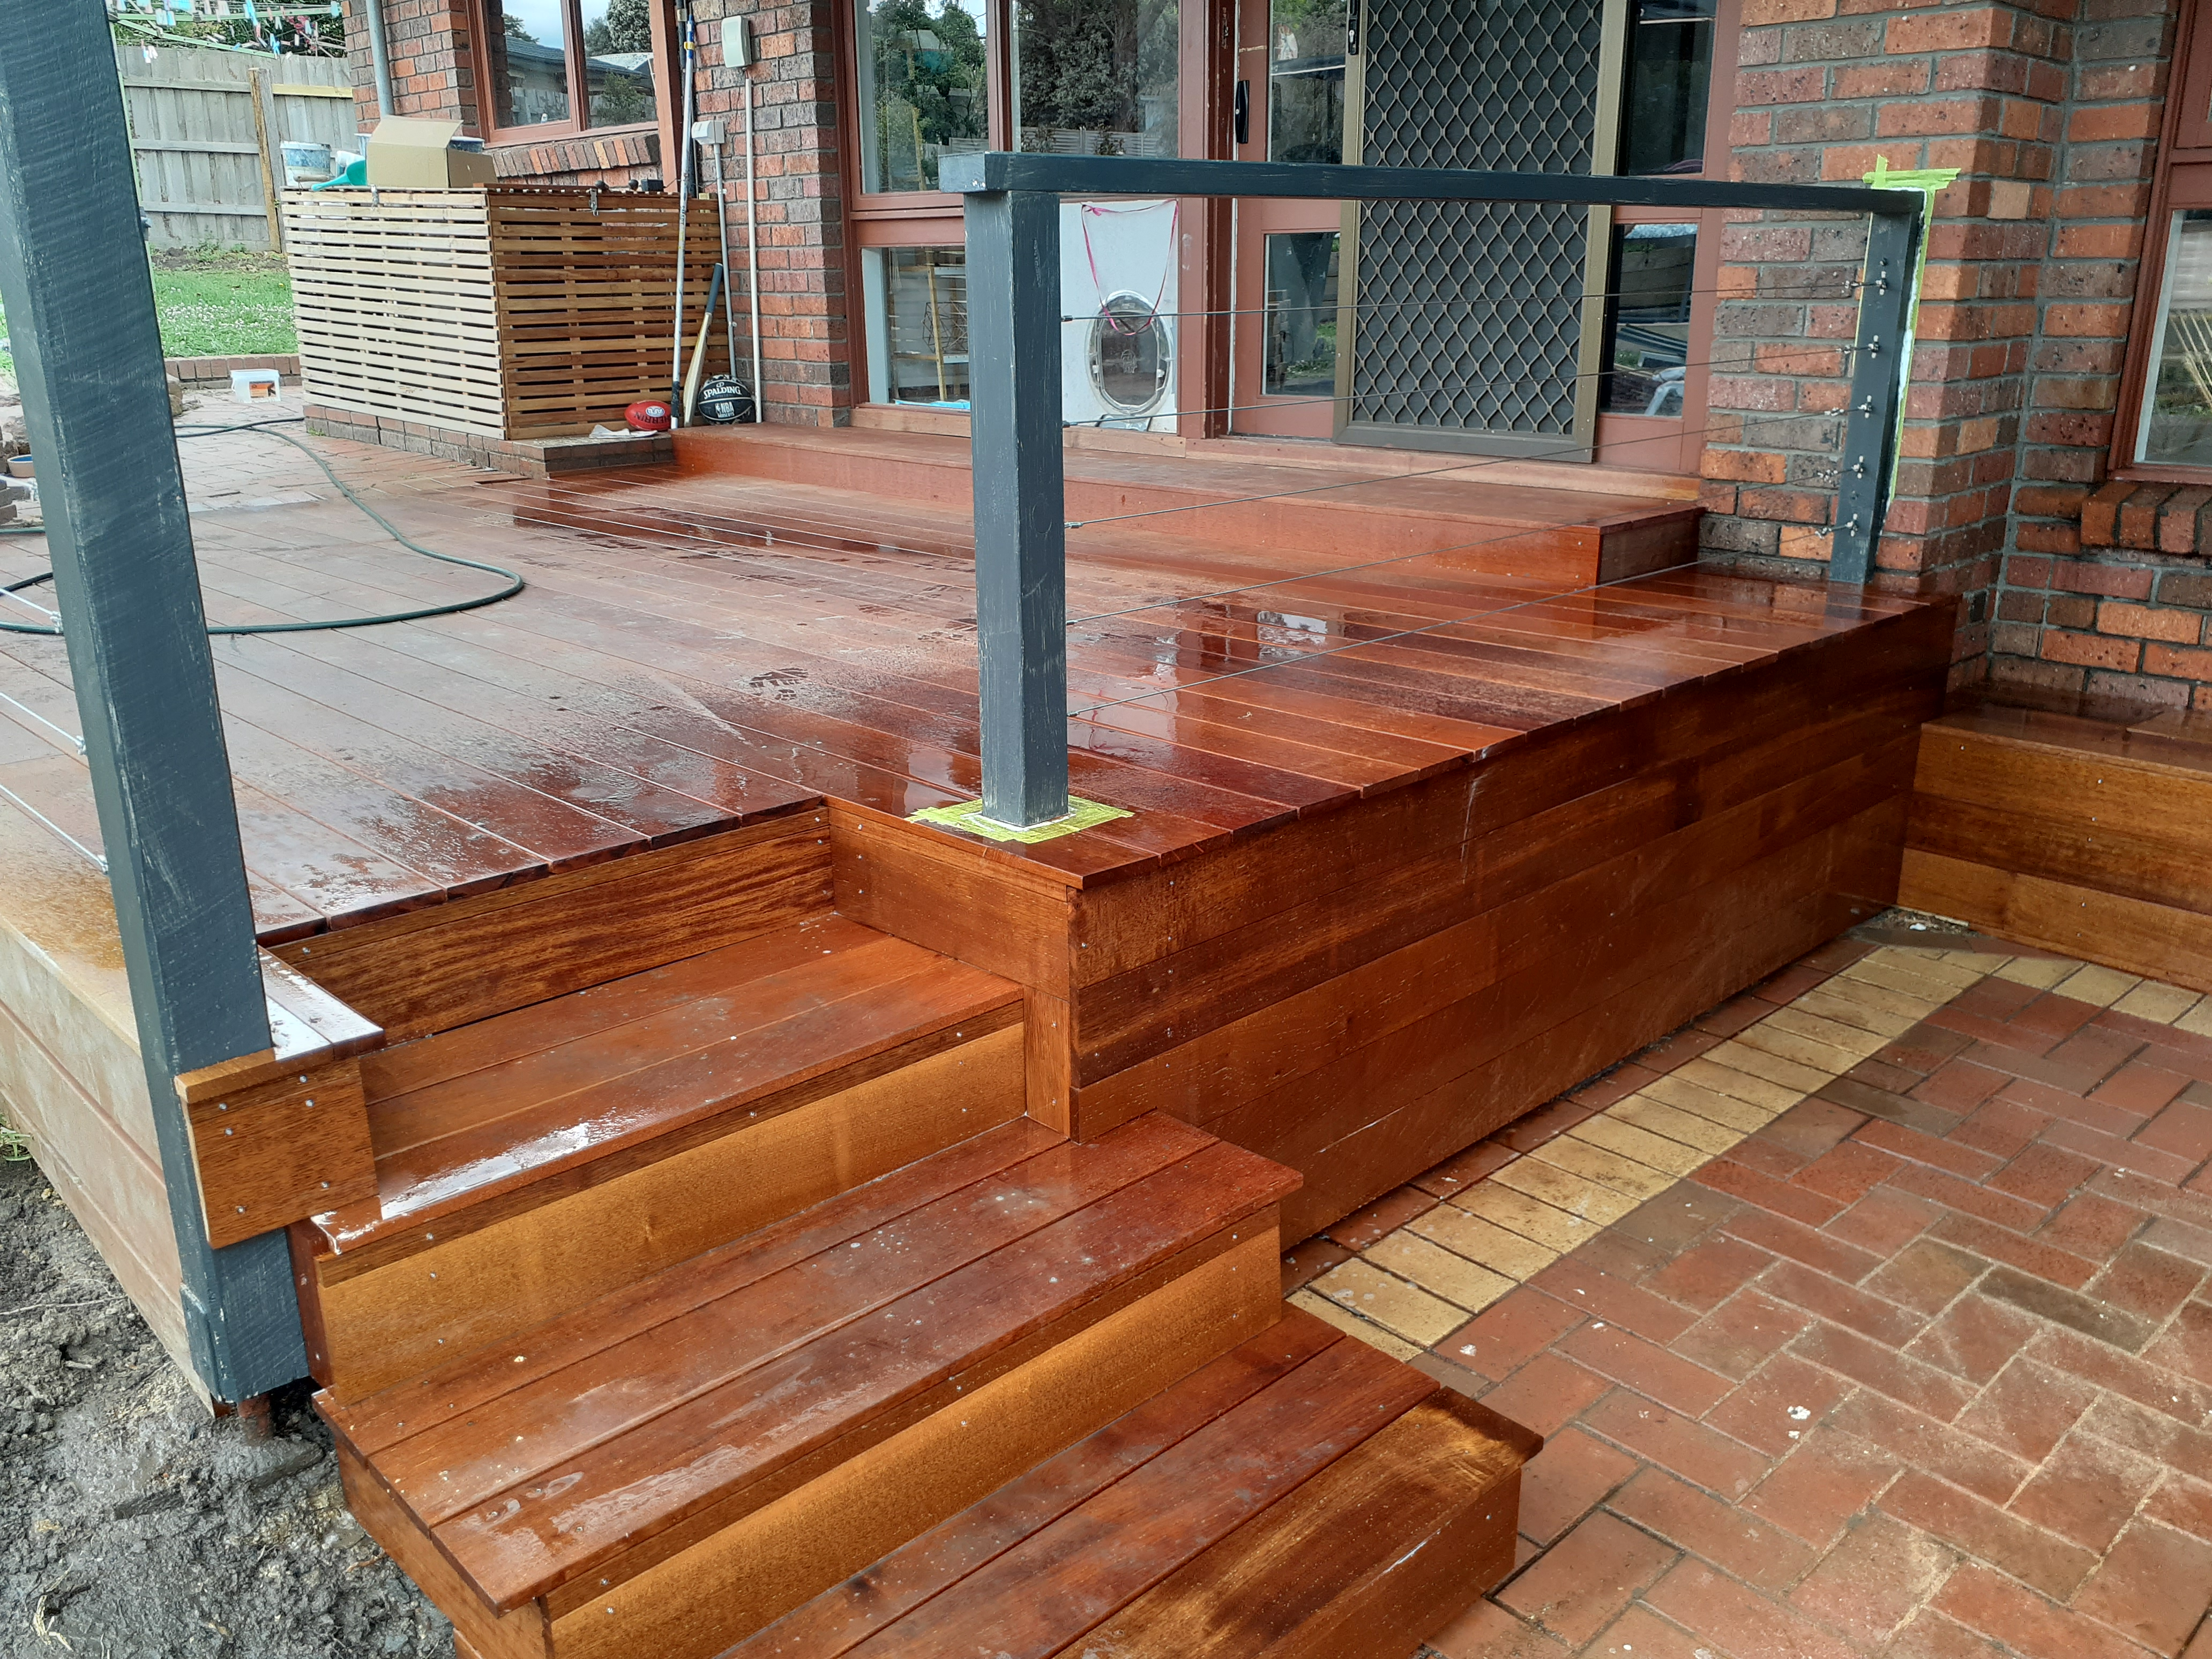 We replaced the sloped brick ramp with a nice Merbau step